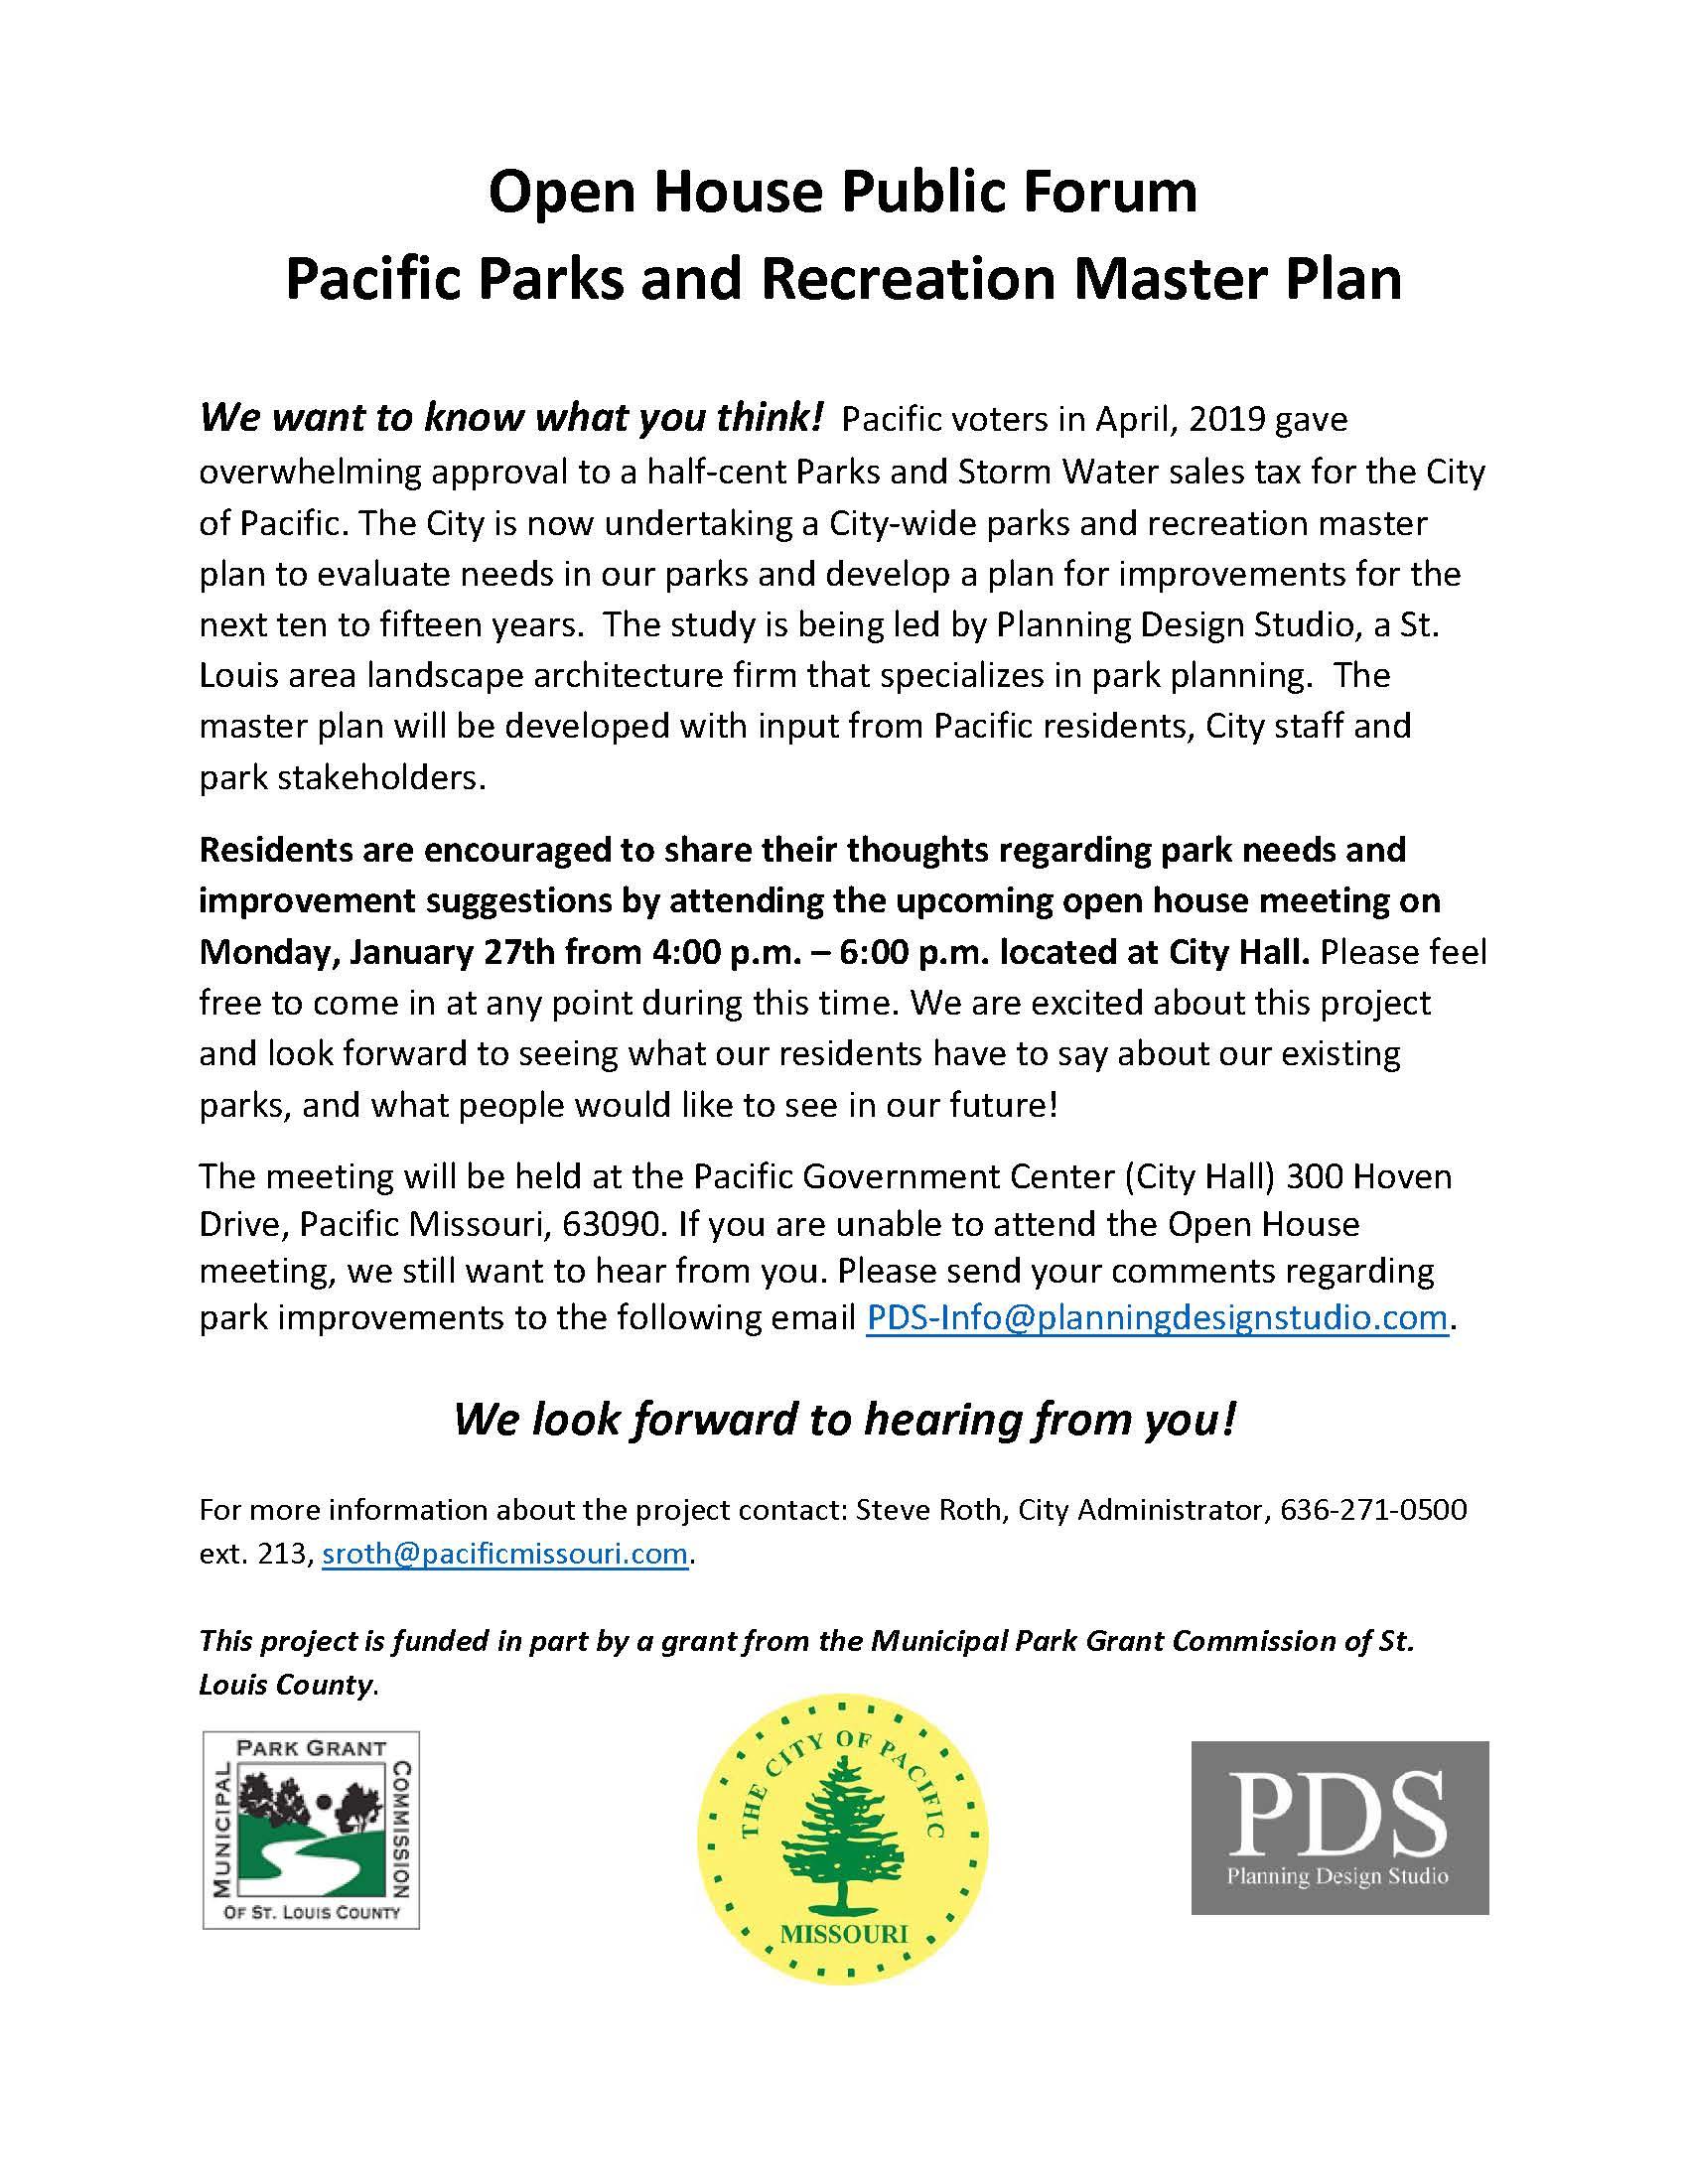 Pacific Parks Master Plan flyer